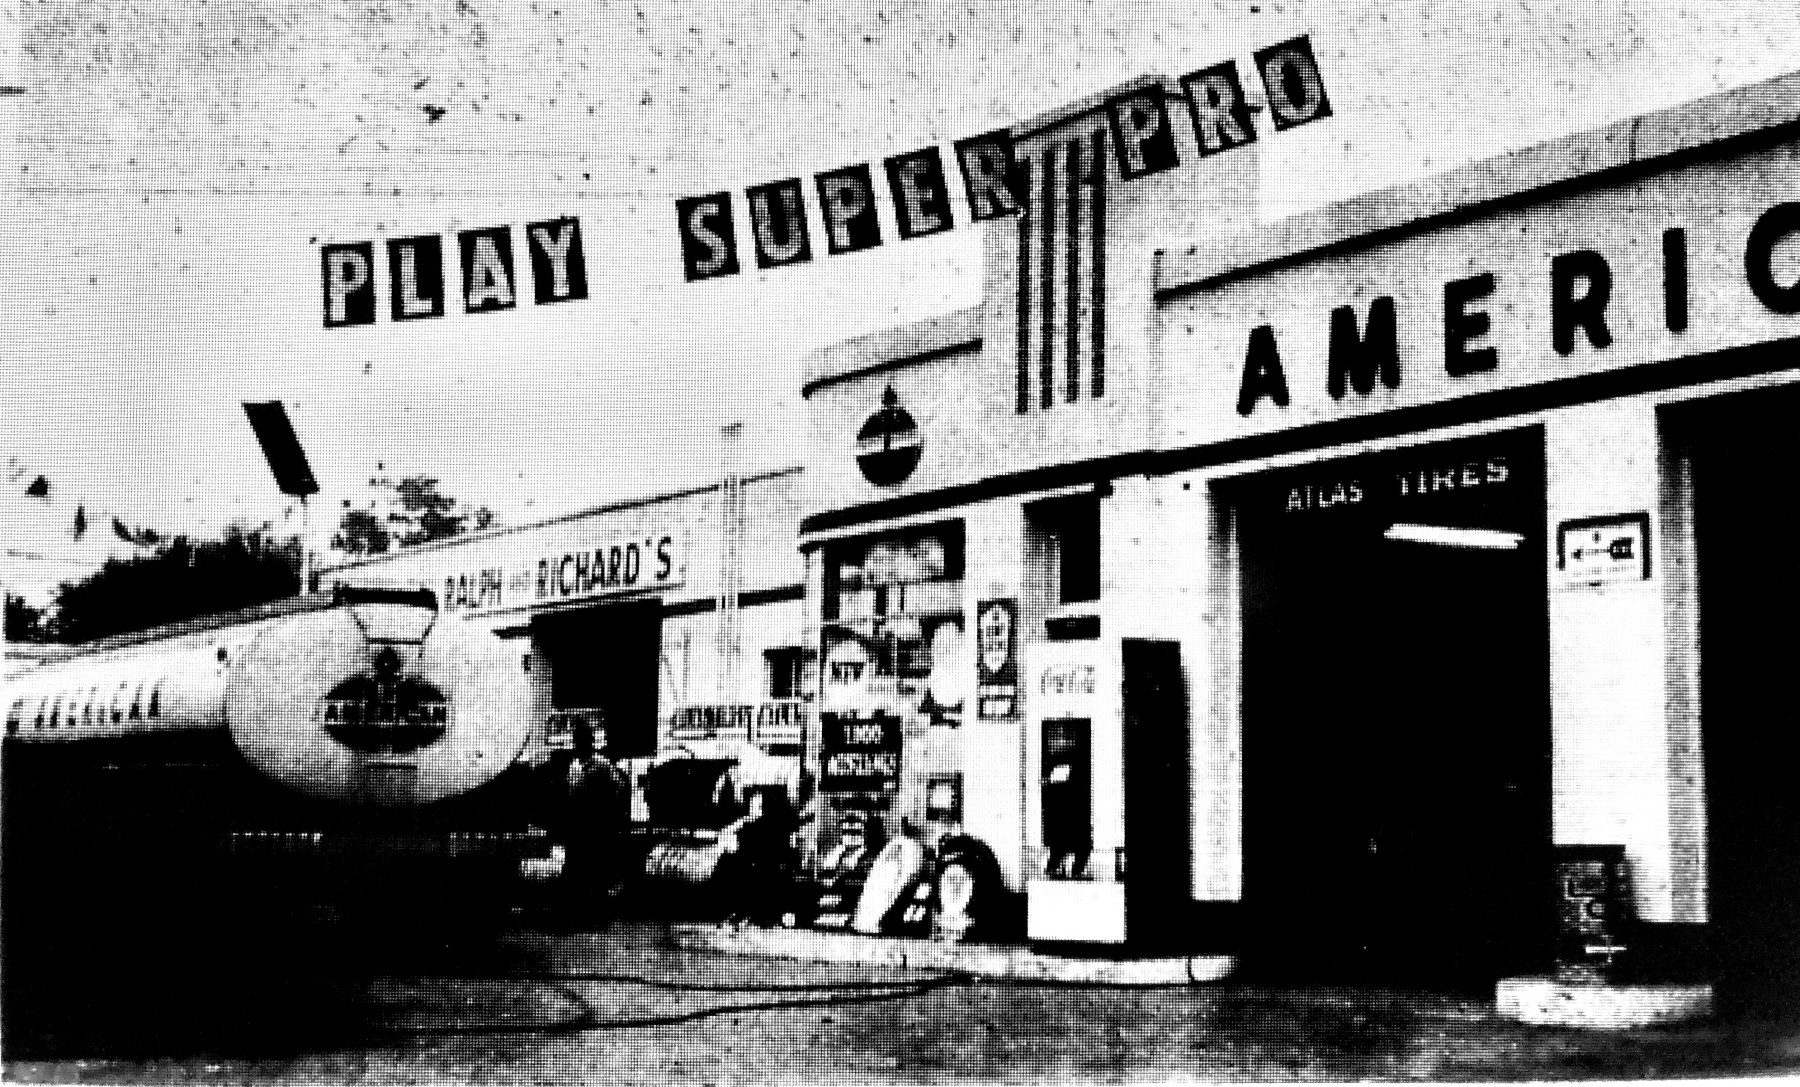 Ralph and Richard's American Service Station